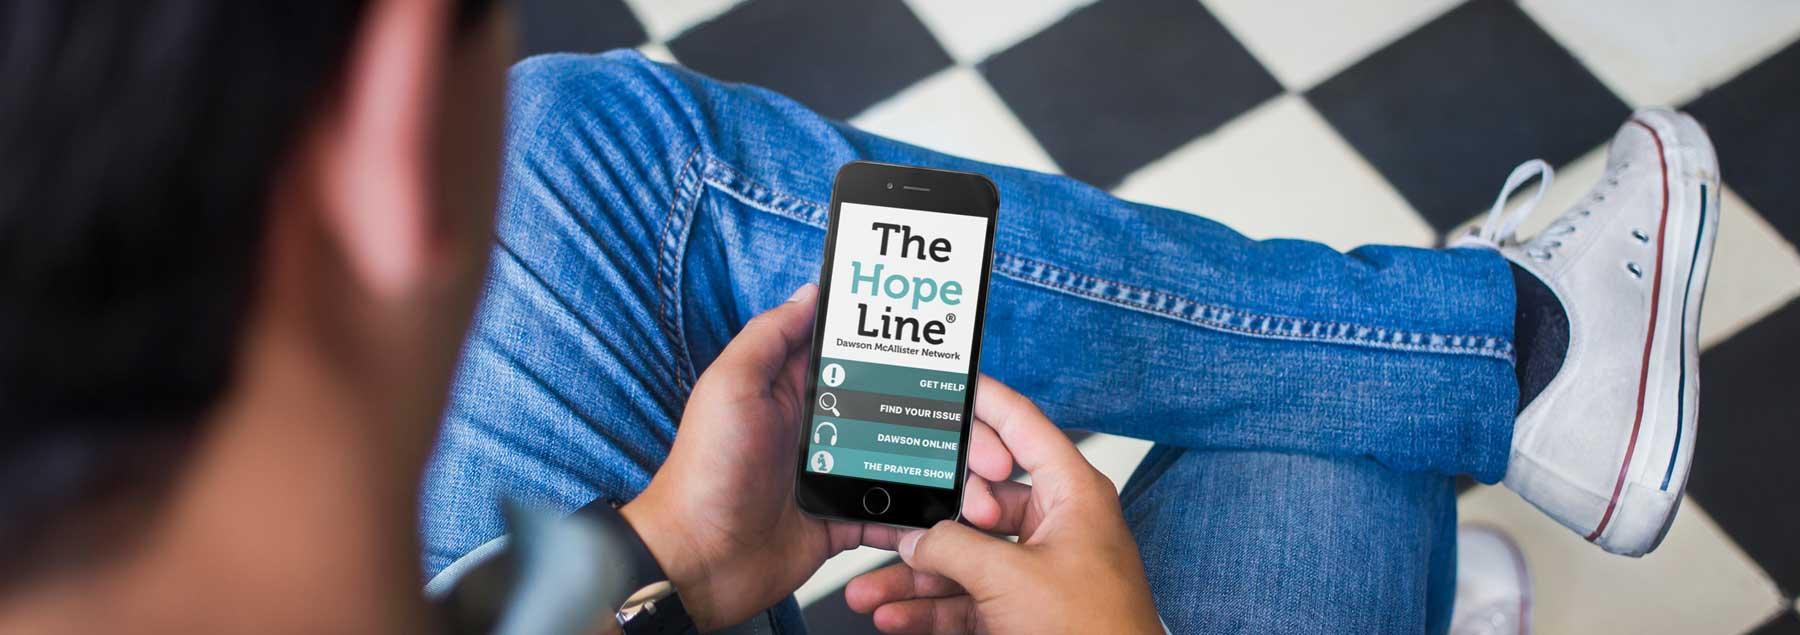 need-to-talk-about-your-issues-Get-thehopeline-app-to-talk-to-a-HopeCoach-get-an-email-mentor-and-free-resources